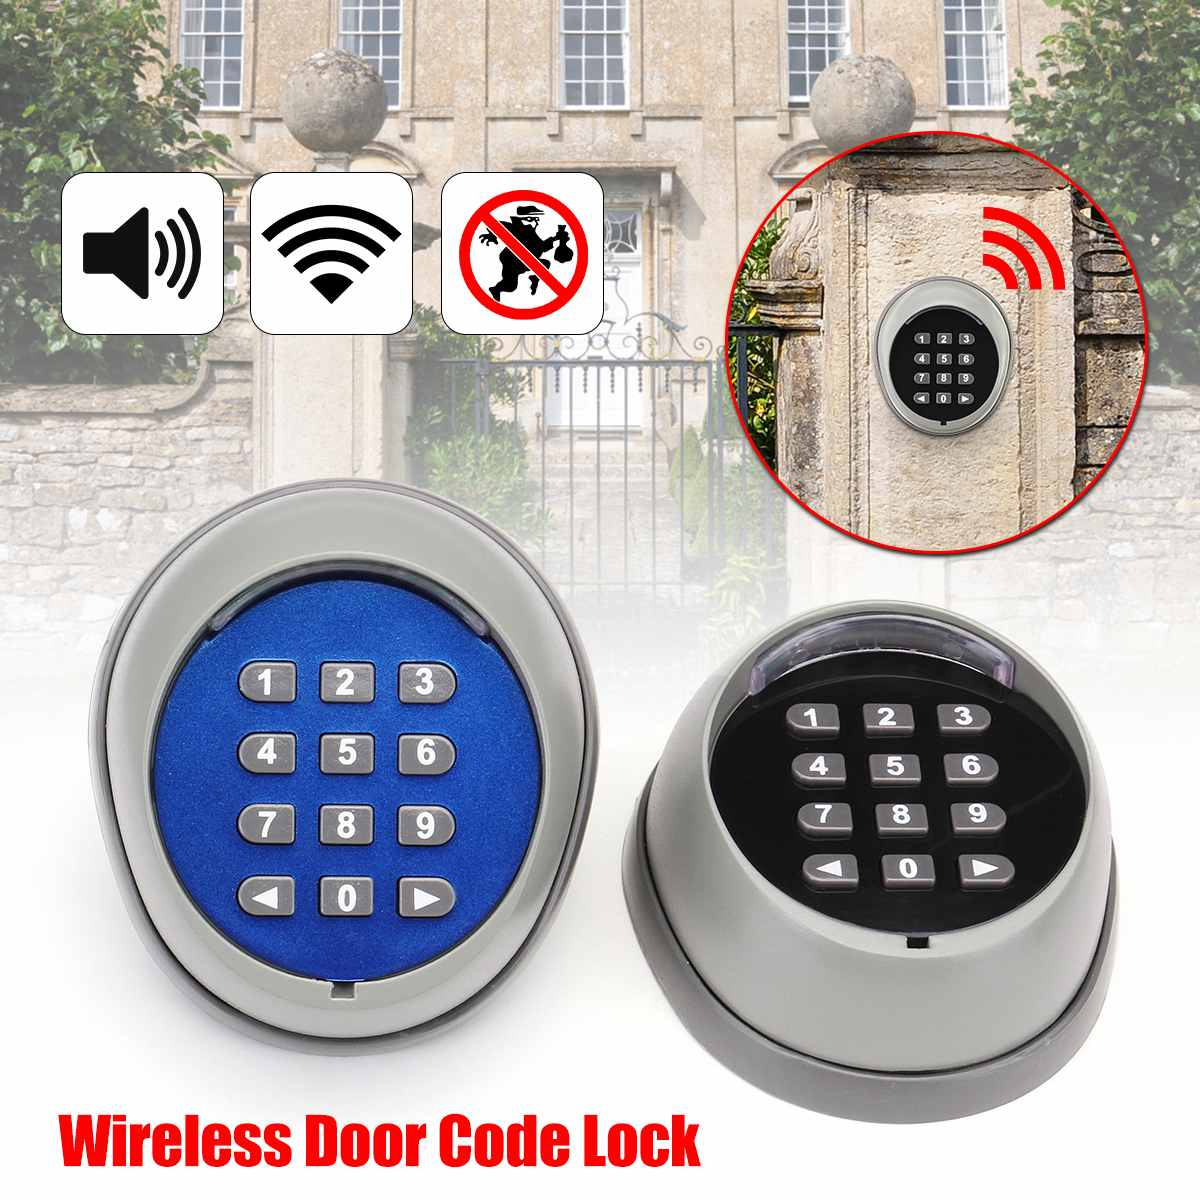 1PCS Black/Blue Door Lock Access Control Wireless Keypad Password Switch Kit For Gate Door MOTOR Access Remote Control